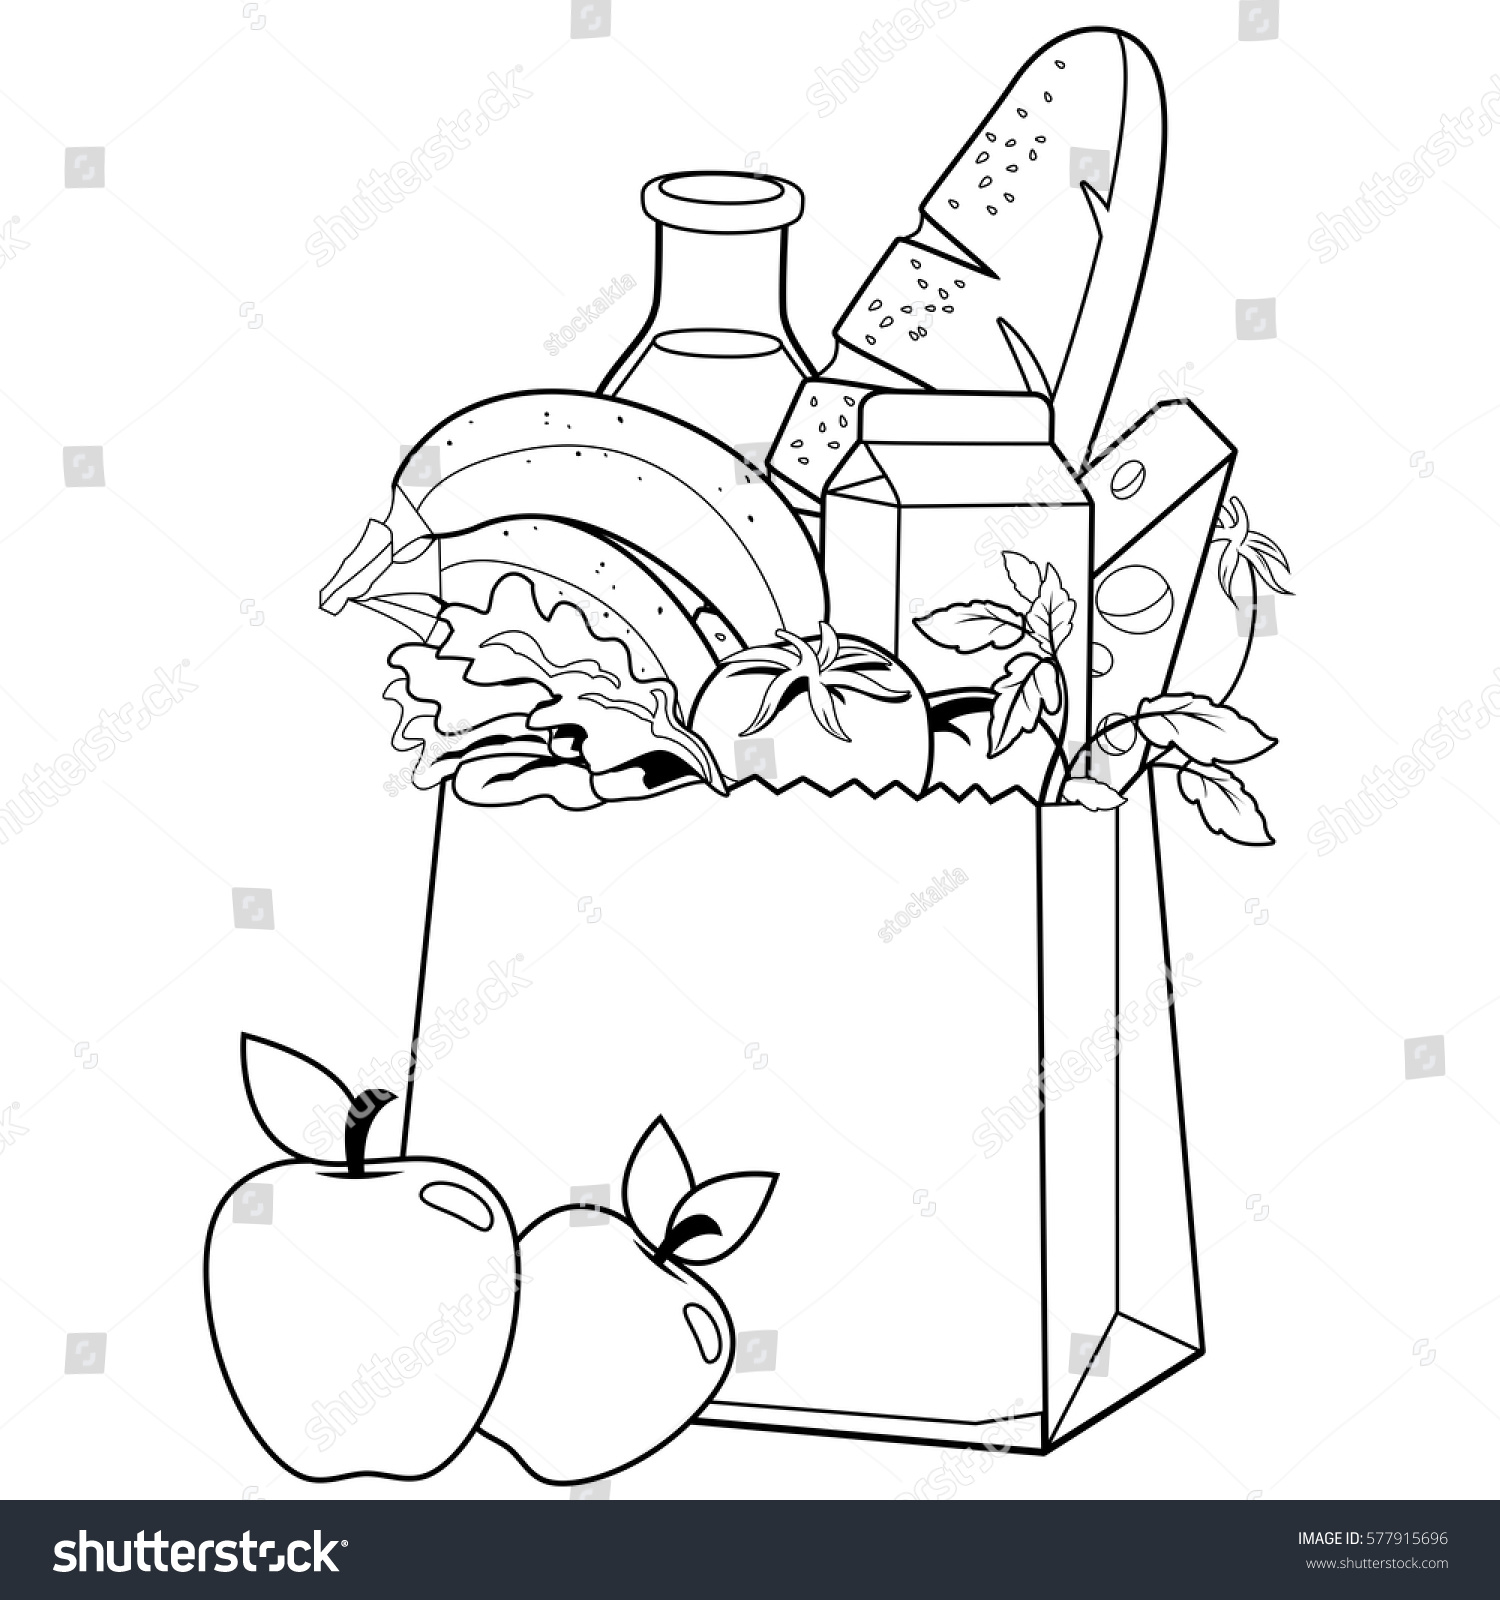 Coloring book bag - Bag With Groceries Coloring Book Page